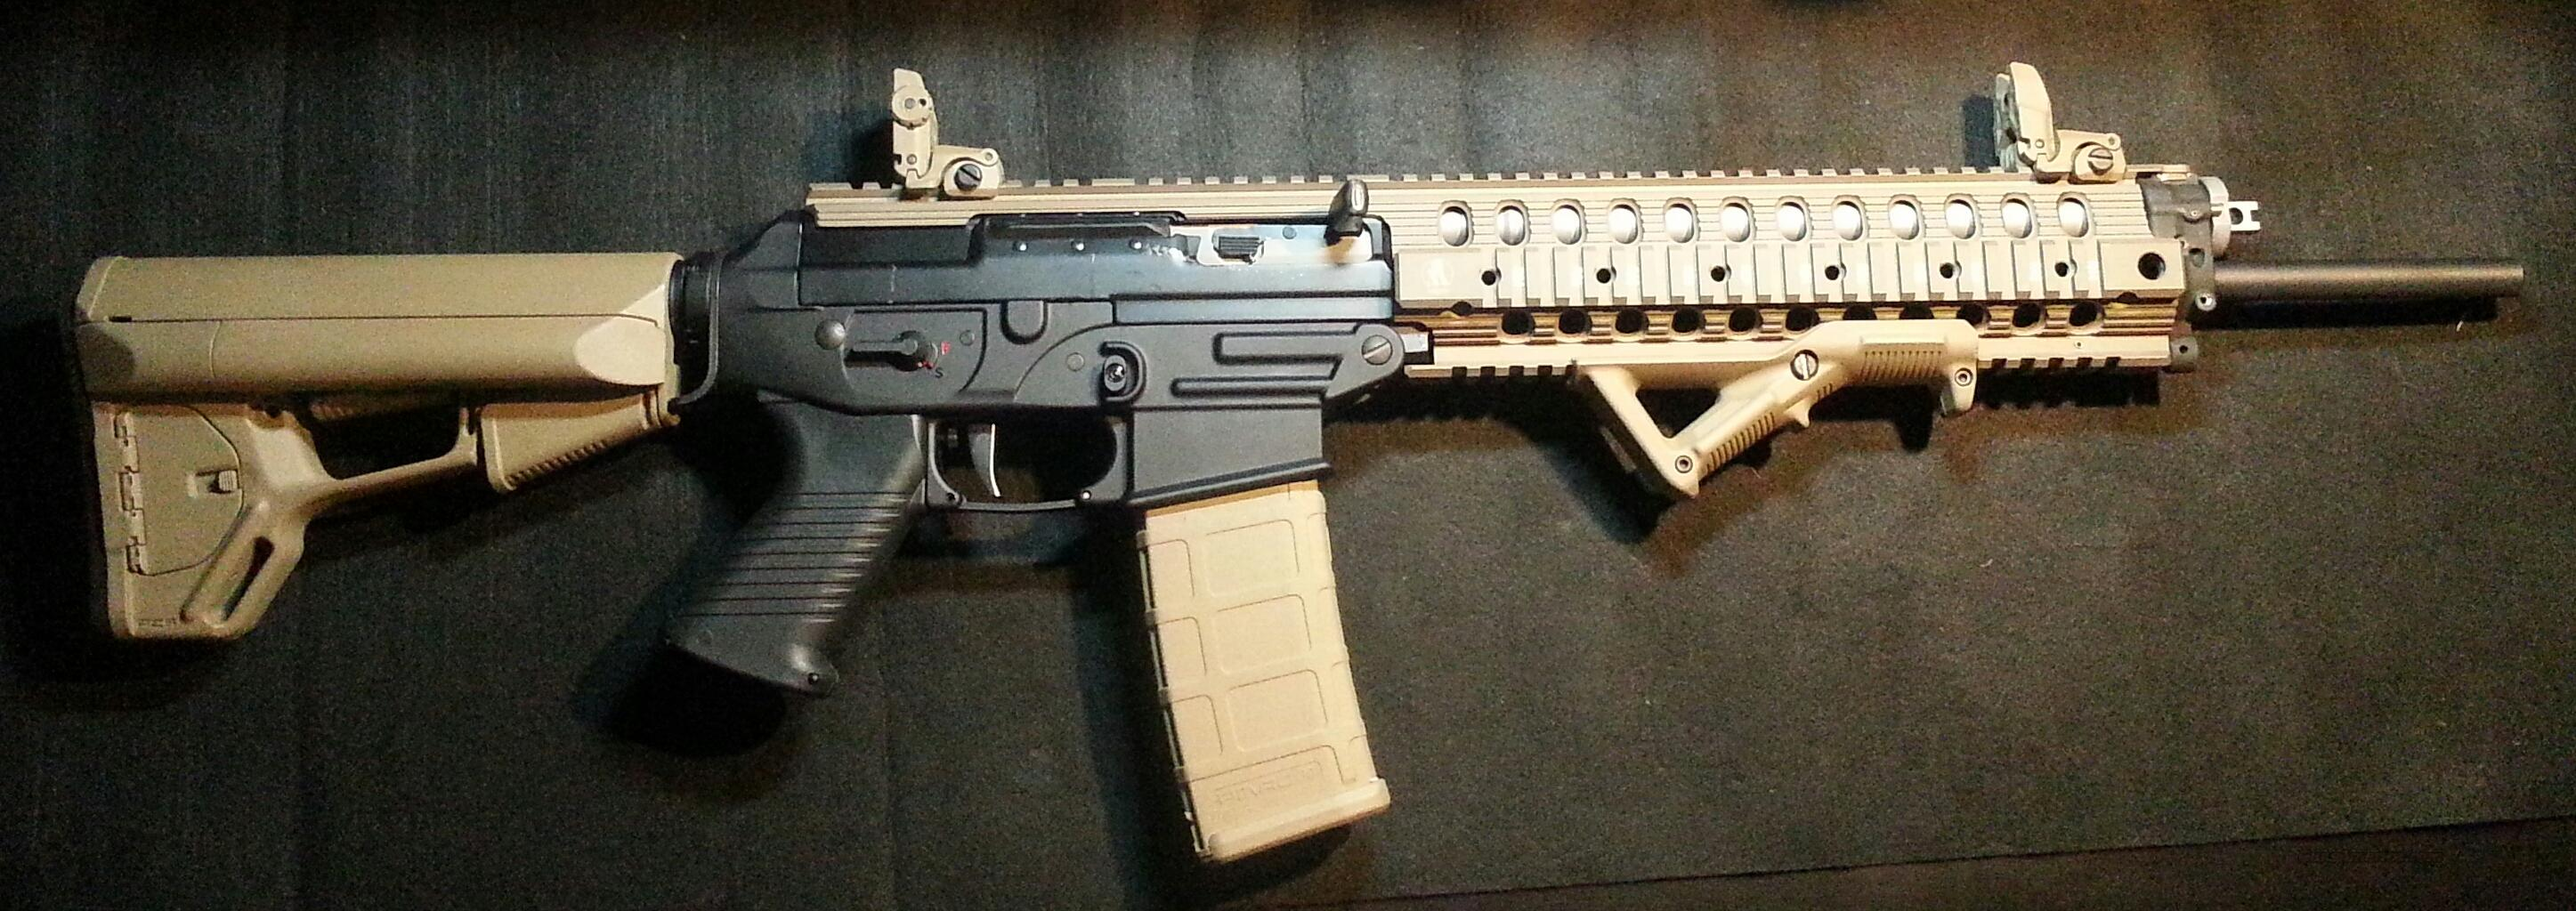 SIG SAUER 556 RIFLE 556 223 For Sale